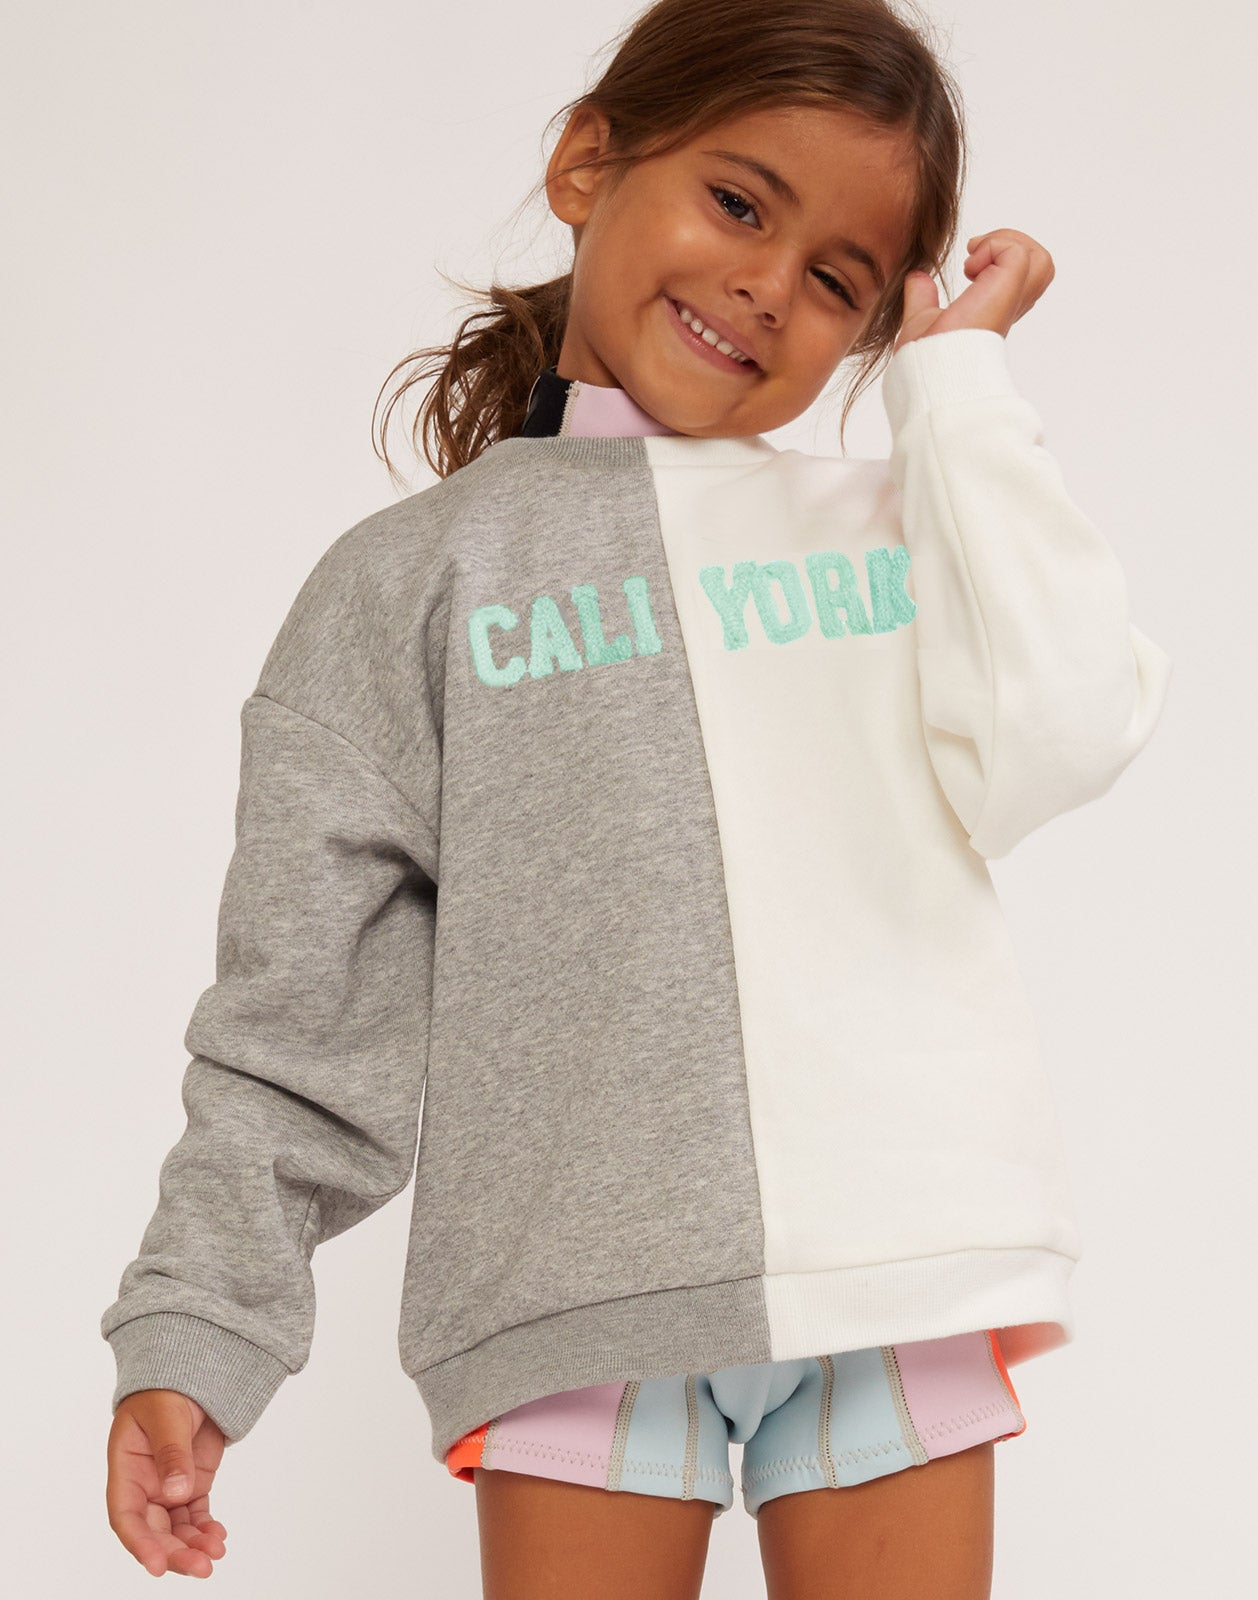 Kid's CaliYork cotton sweatshirt in half grey, half white.